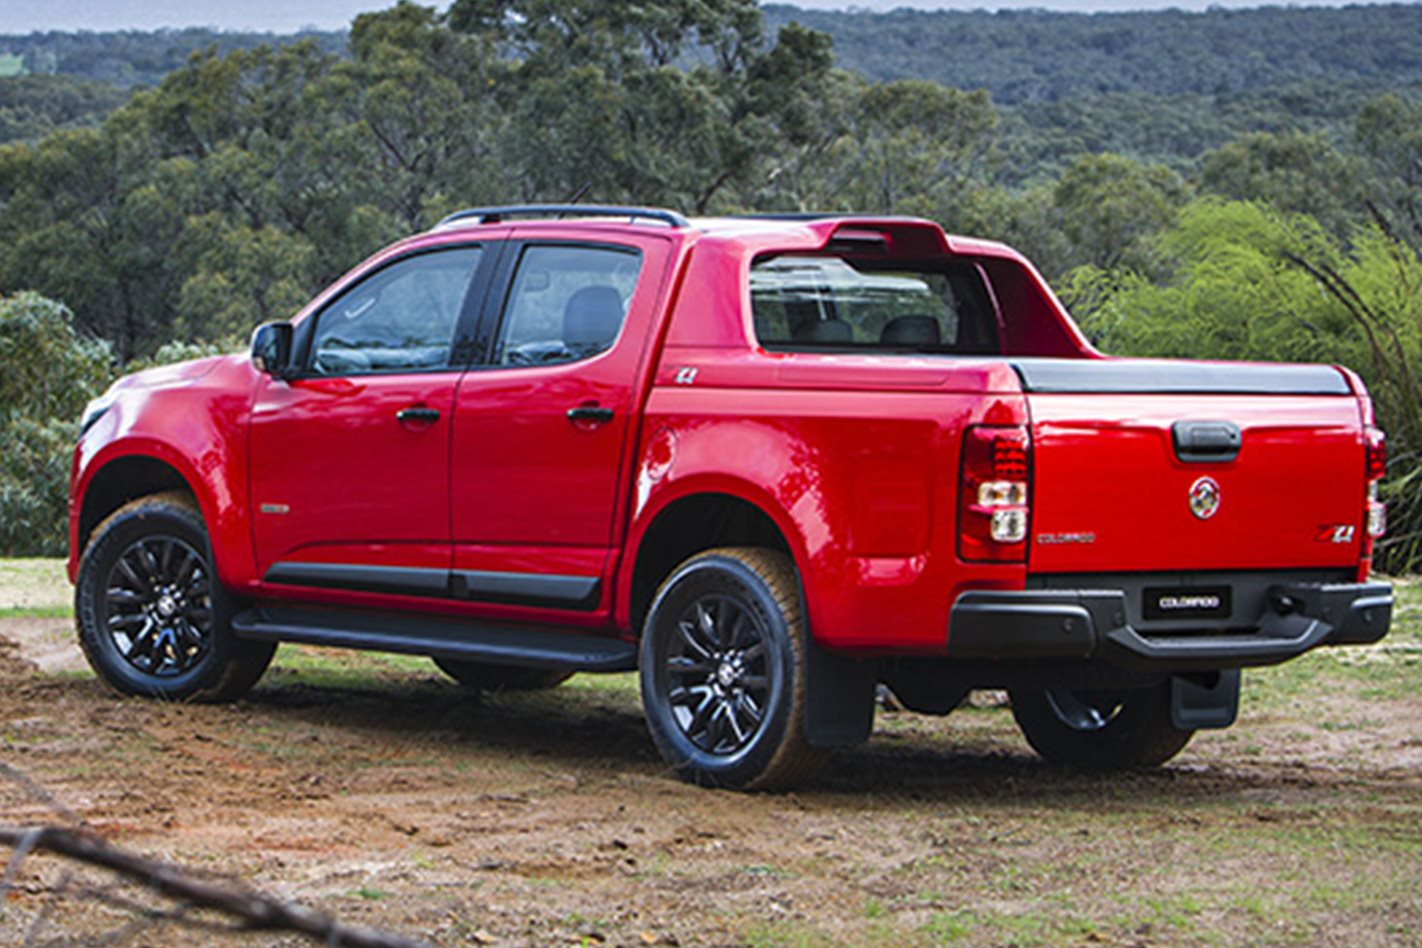 2017 Holden Colorado ute